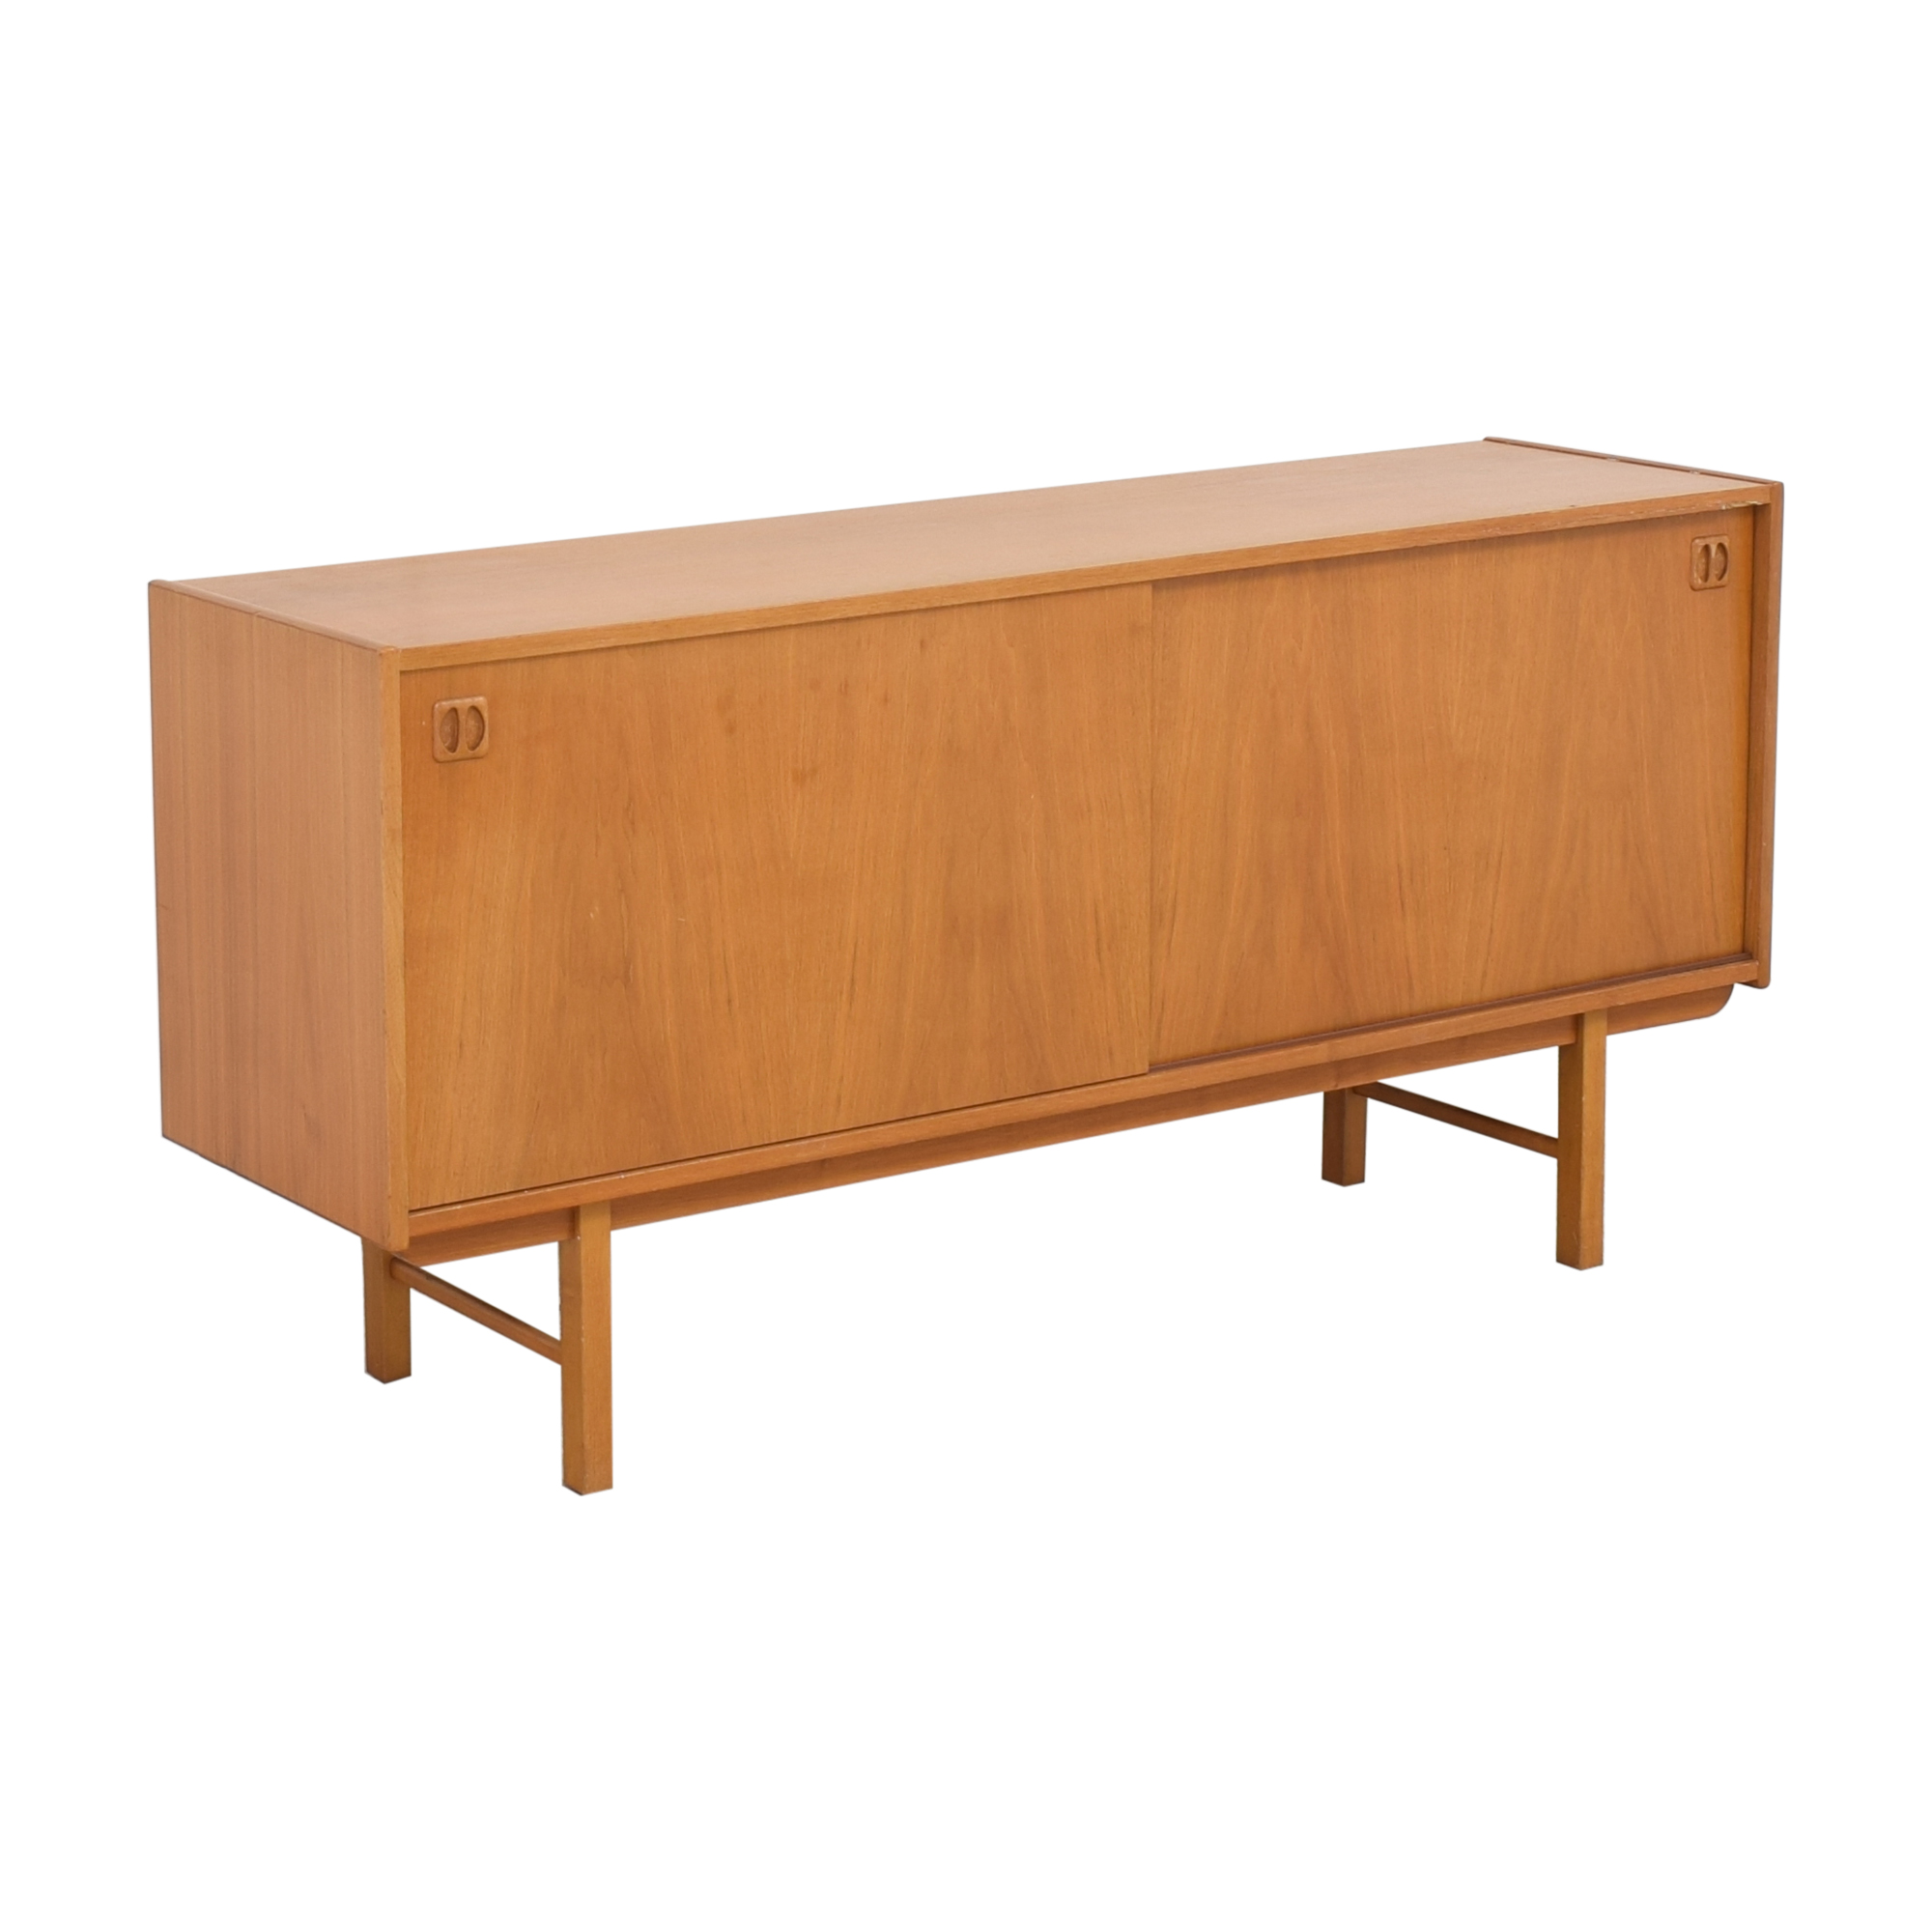 Danish Mid Century Mod Media Credenza brown